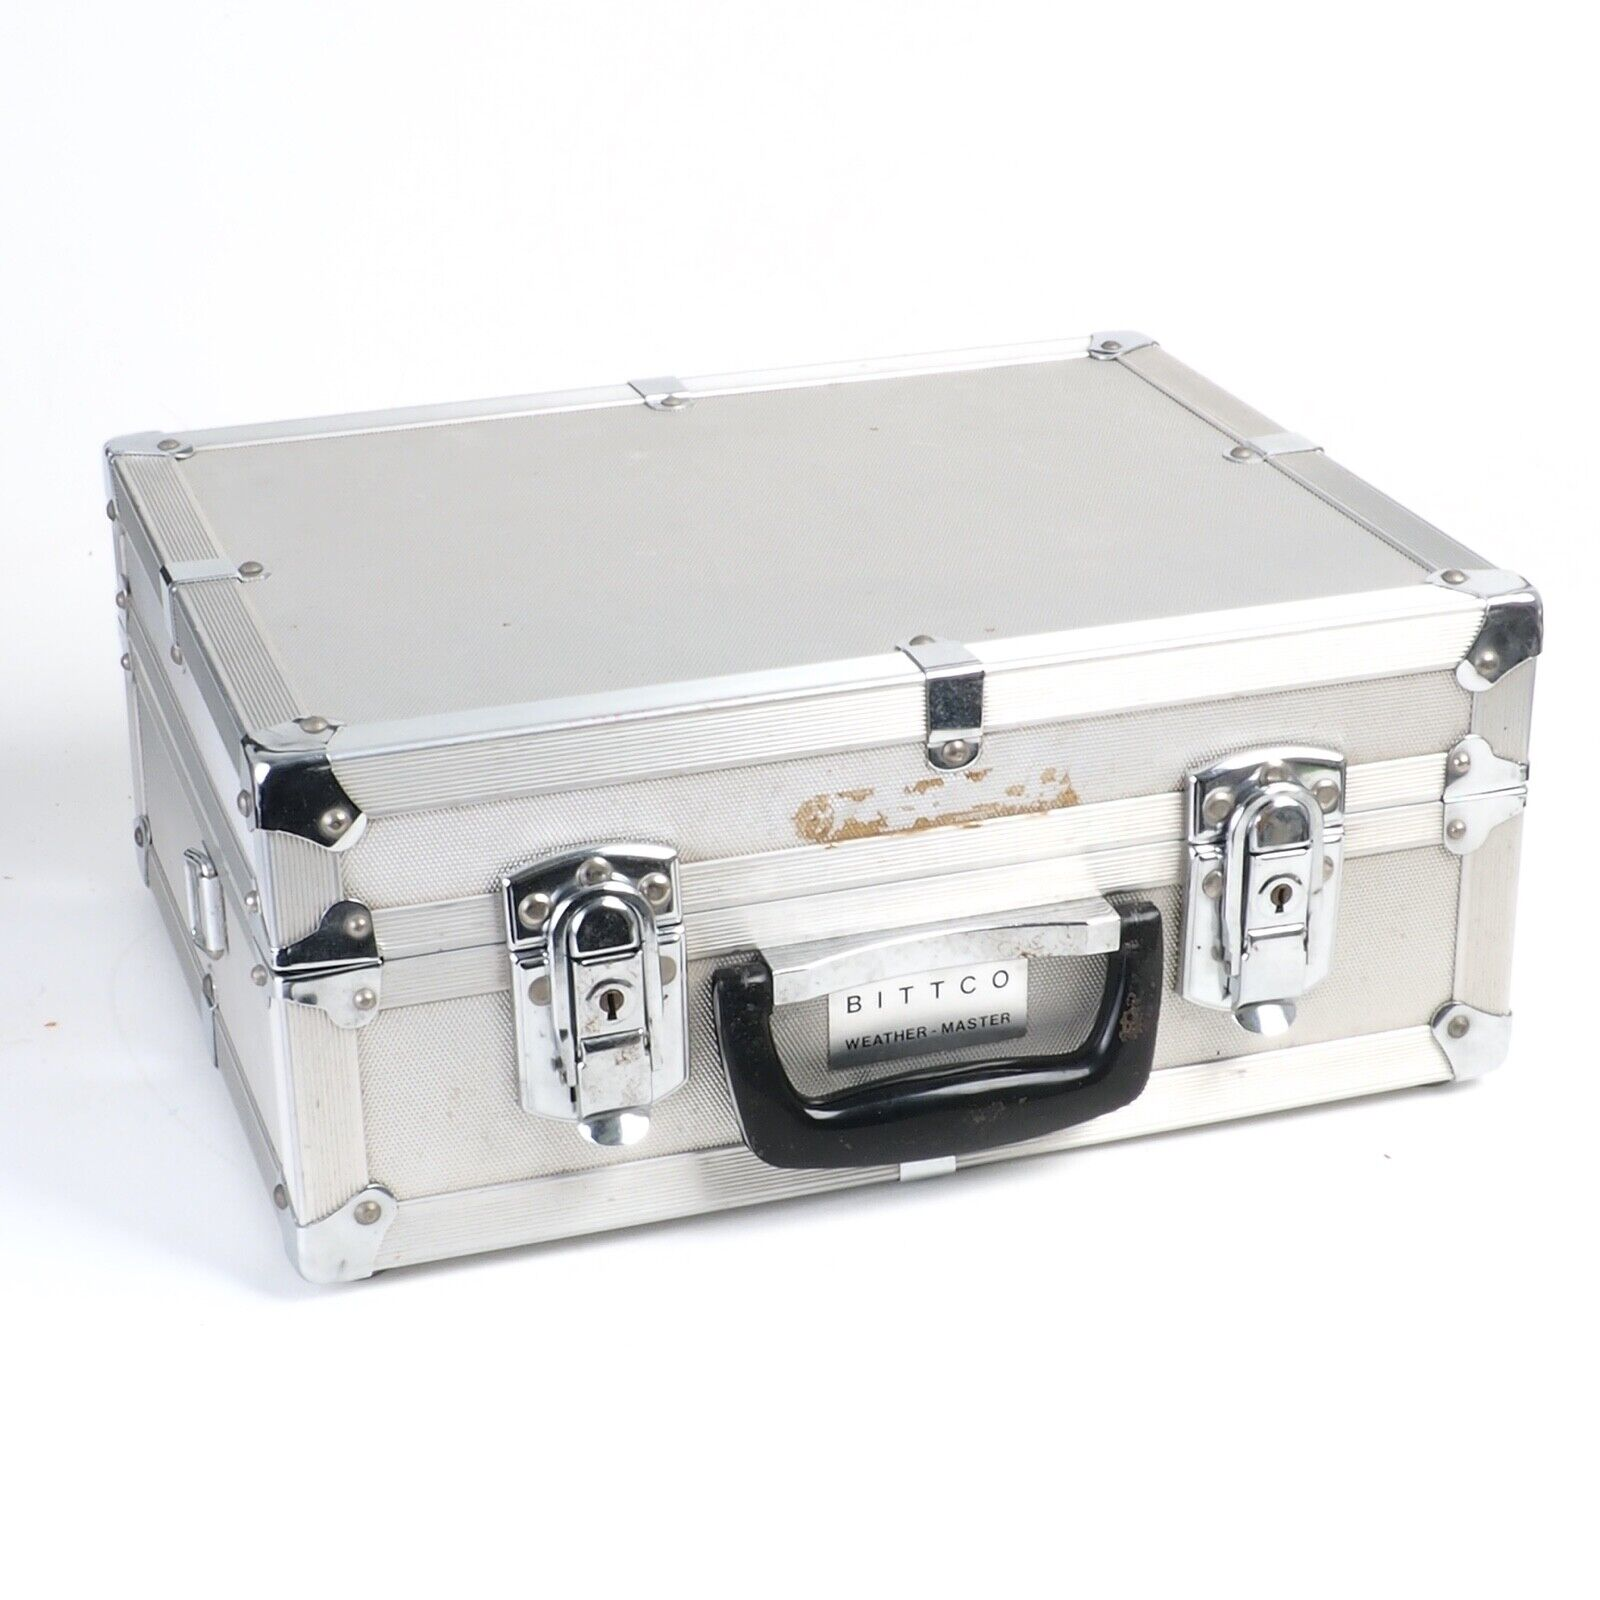 ^ Bittco Weather Master Chrome Hardbox for Camera Systems or Other Valuables!